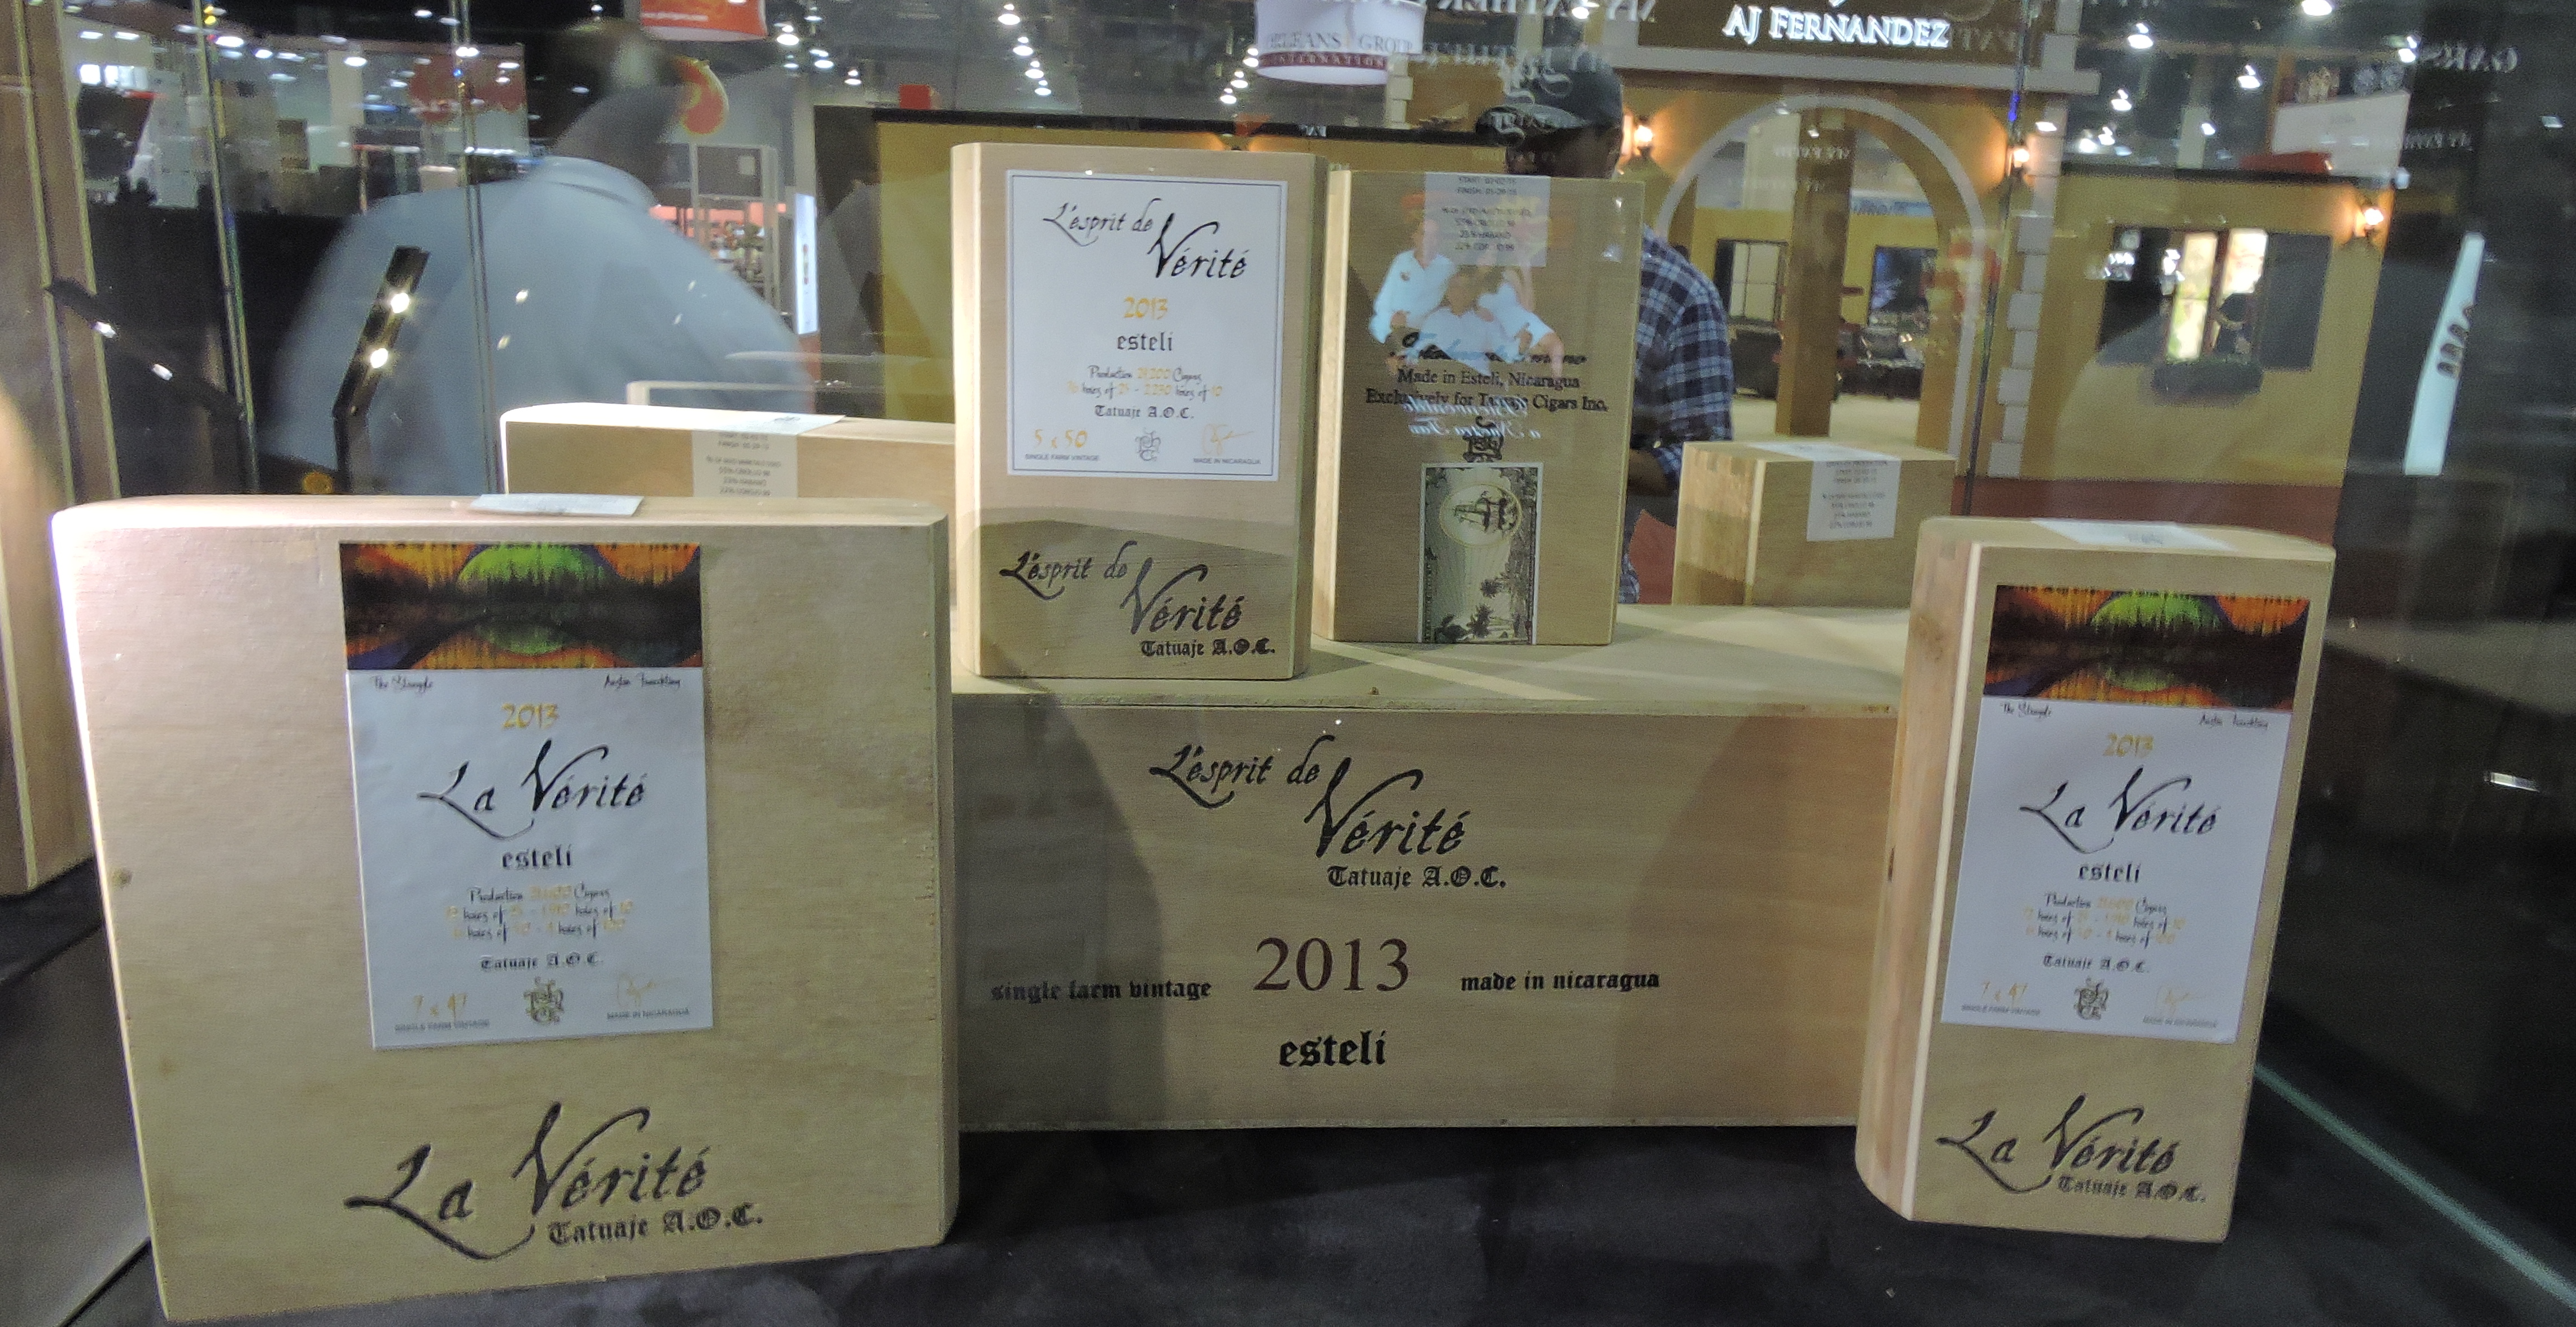 Cigar News: Tatauje La Verite 2013 Debuts at 2016 IPCPR